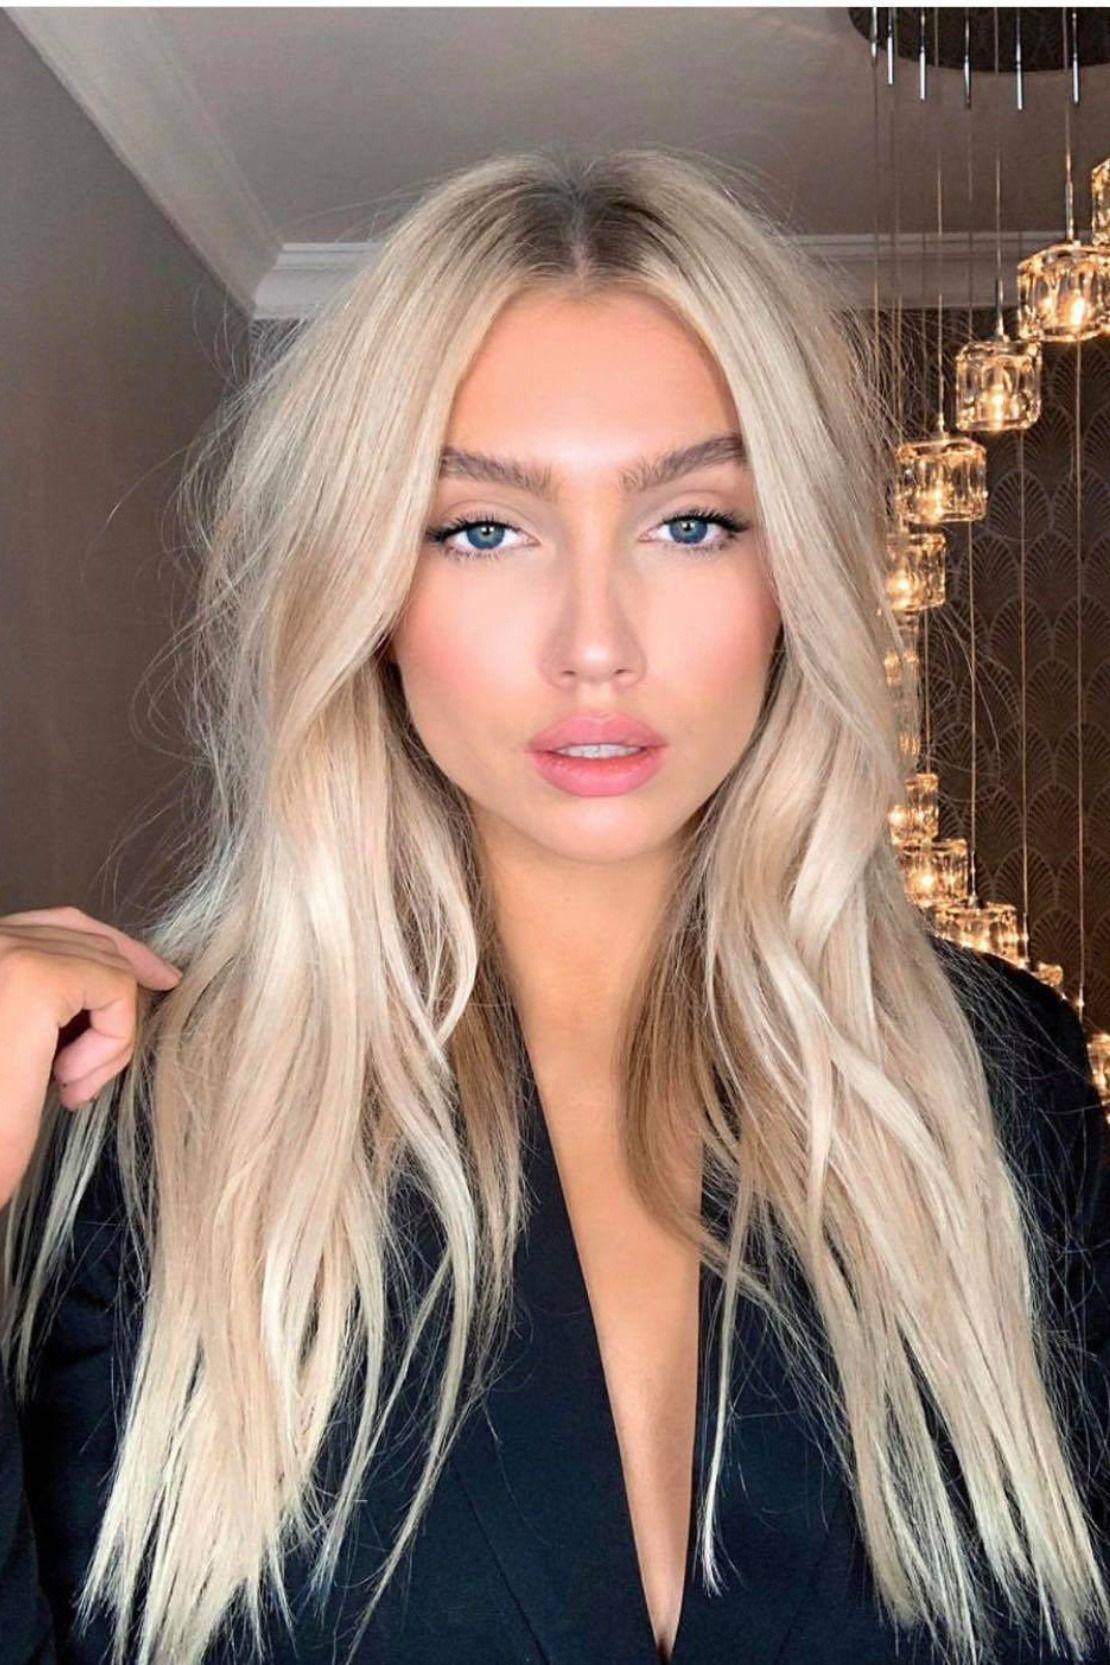 Pin on hair ambitions 2020 fun colours #blonde#bay